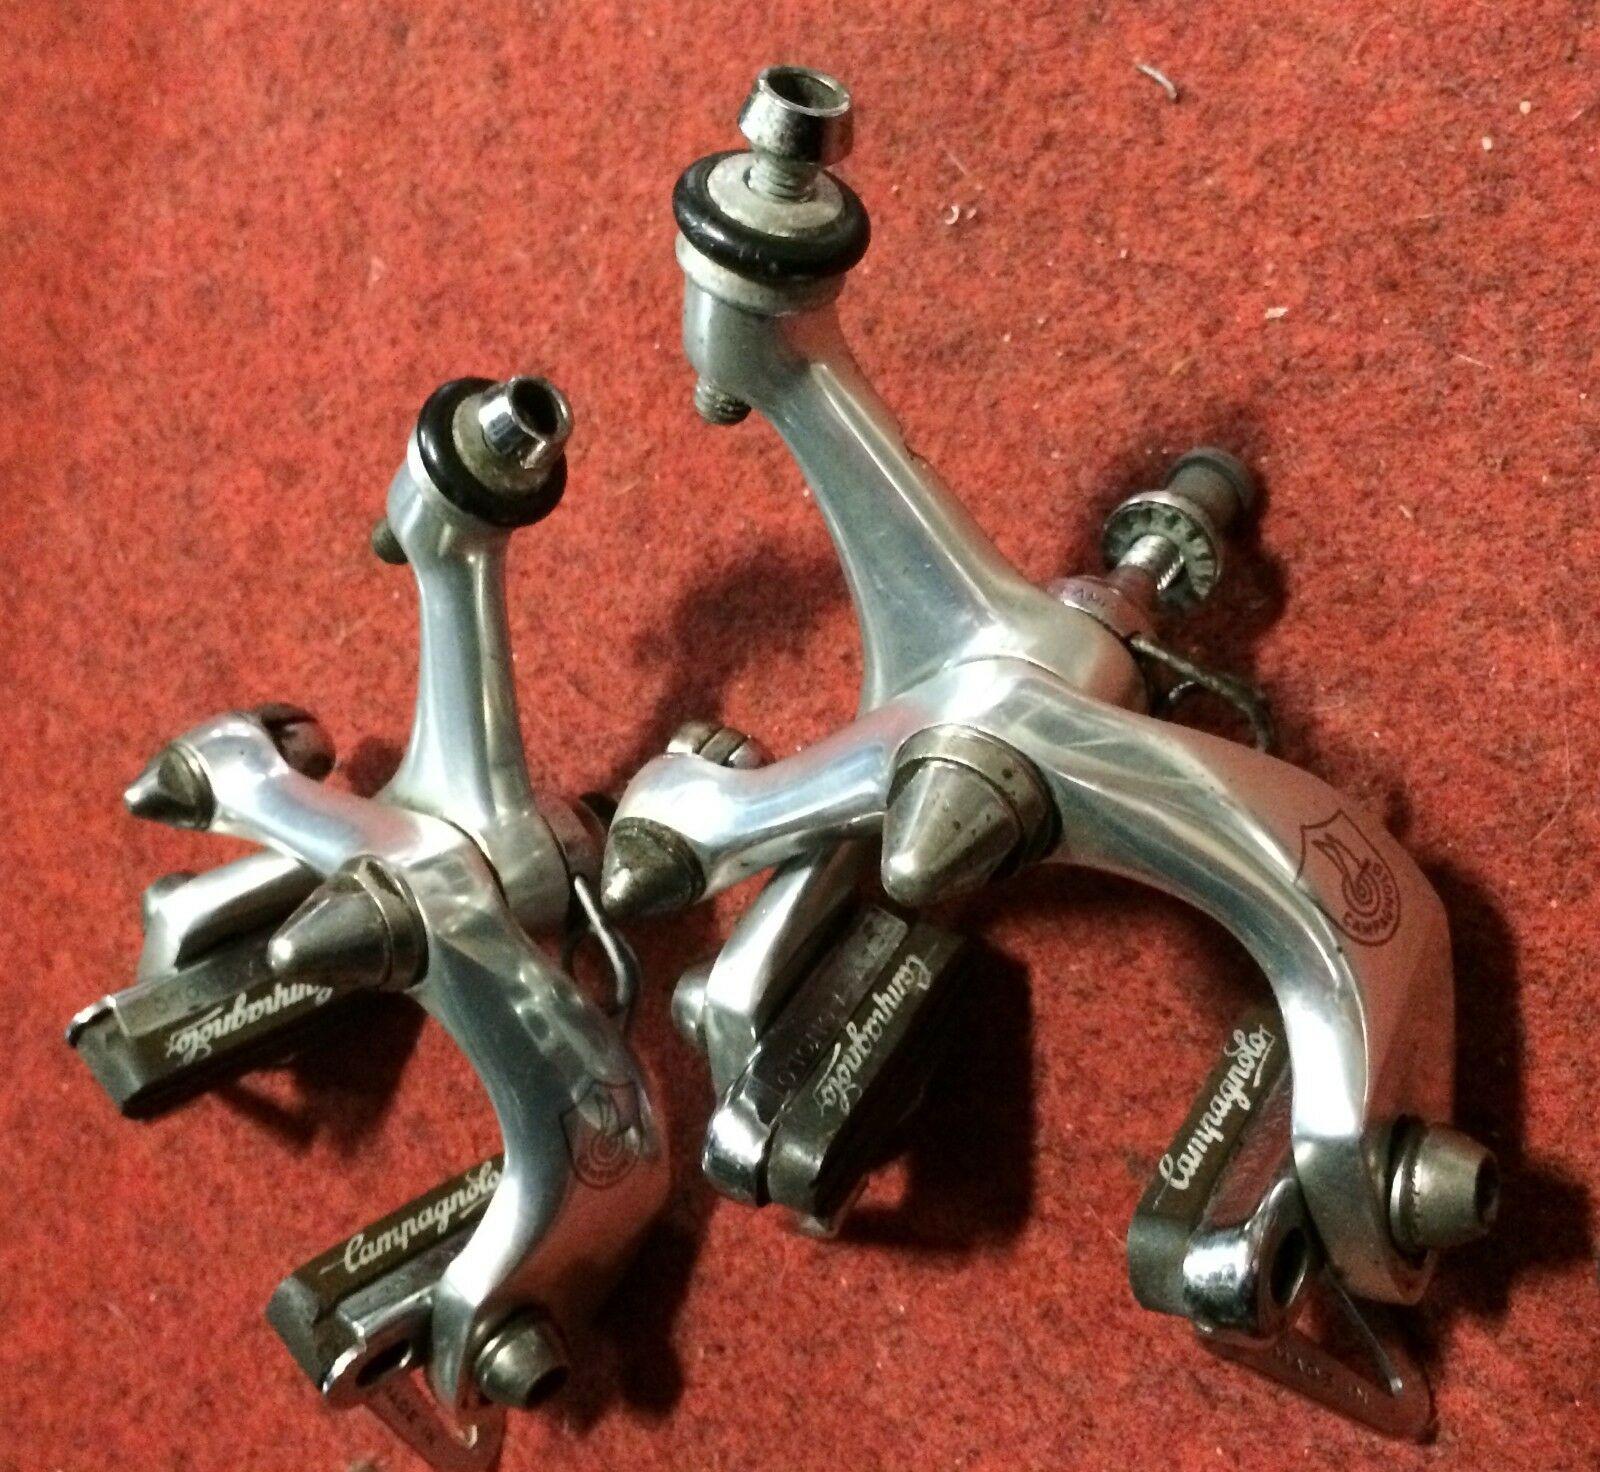 Coppia freni bici corsa Campagnolo vintage road bike brake set couple